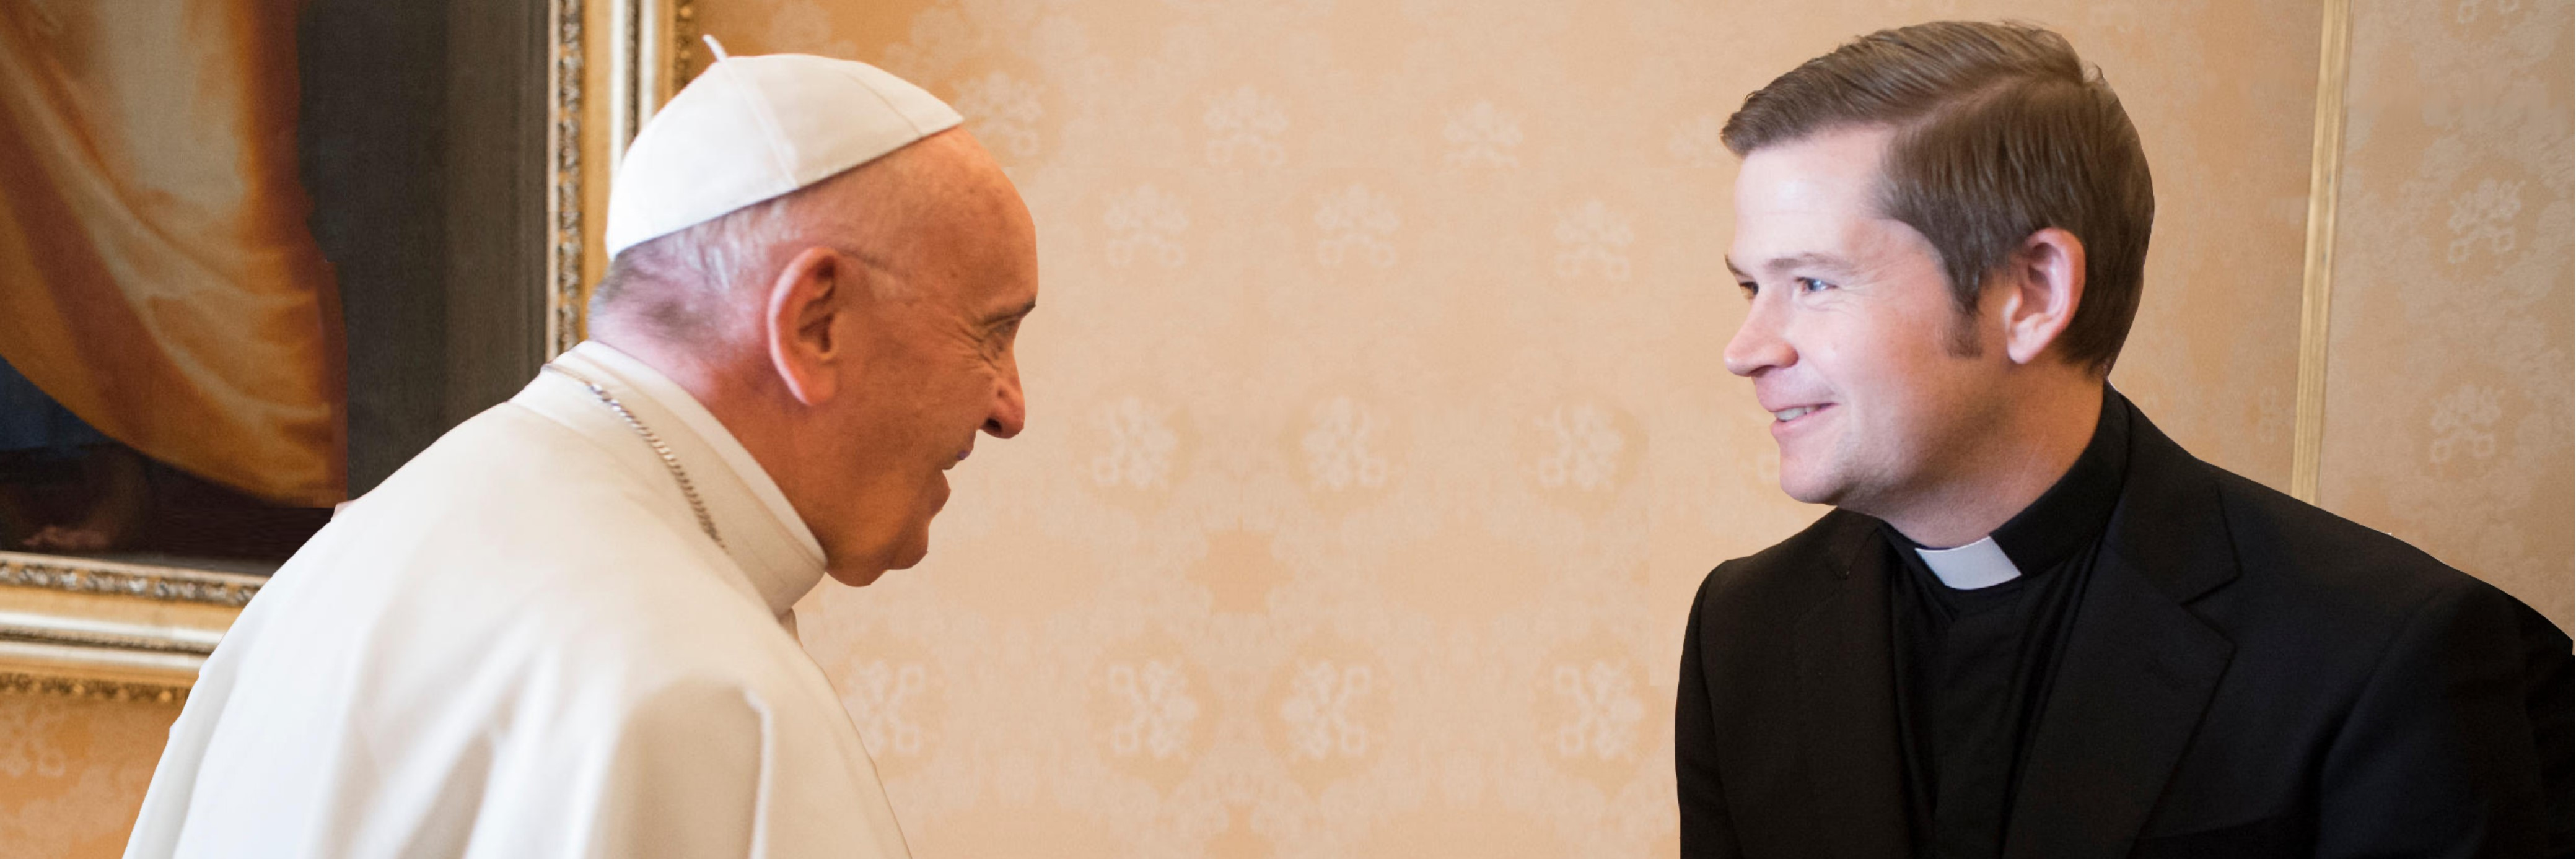 Rev. Ronald meets Pope Francis